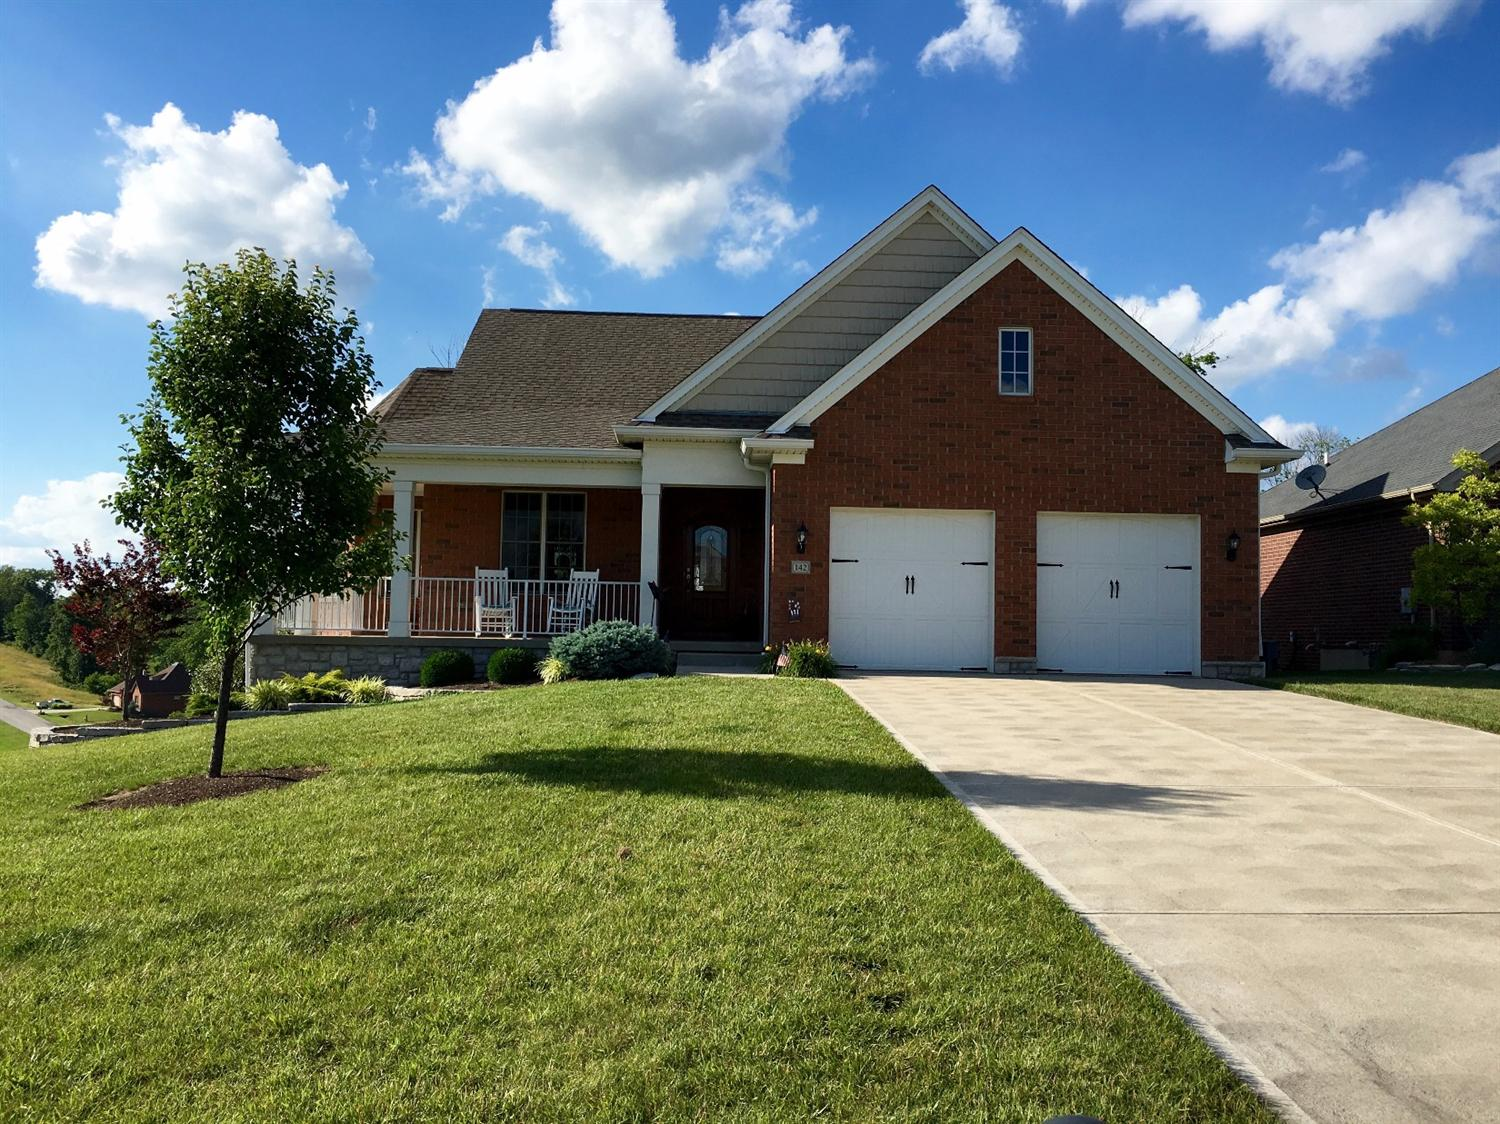 Photo 1 for 142 Oakmont Ct Lawrenceburg, IN 47025